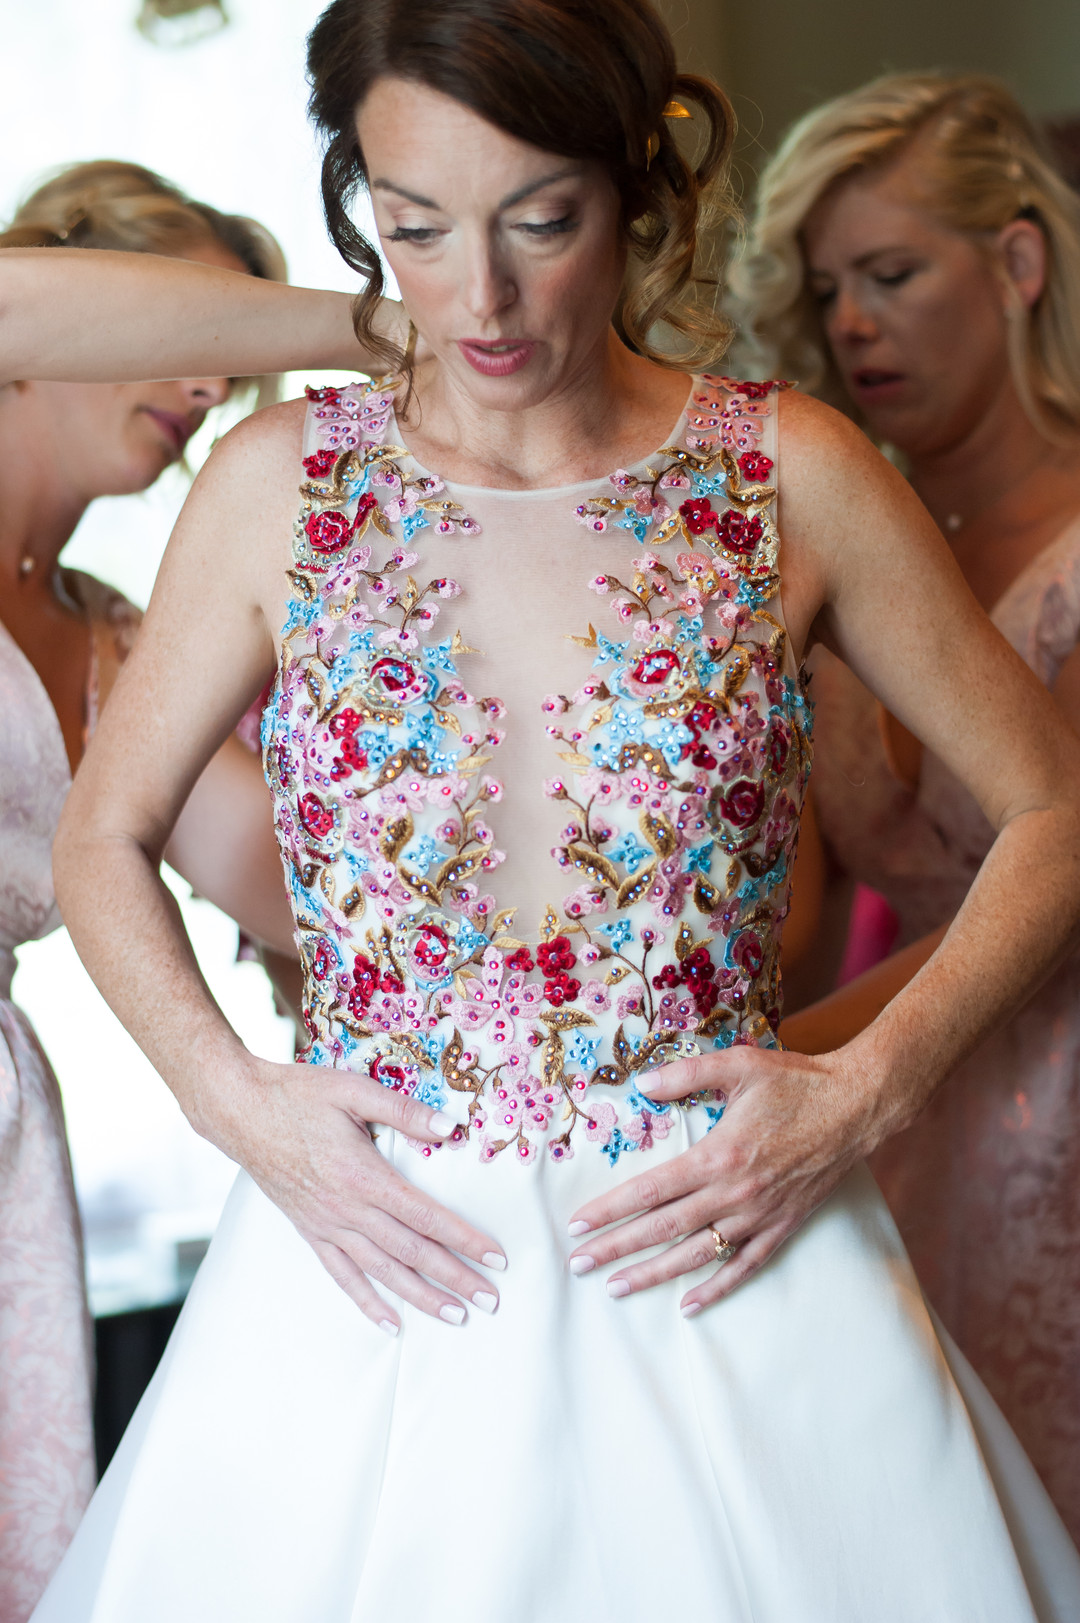 Colorful Floral Bridal Gown Chicago Wedding Elite Photography